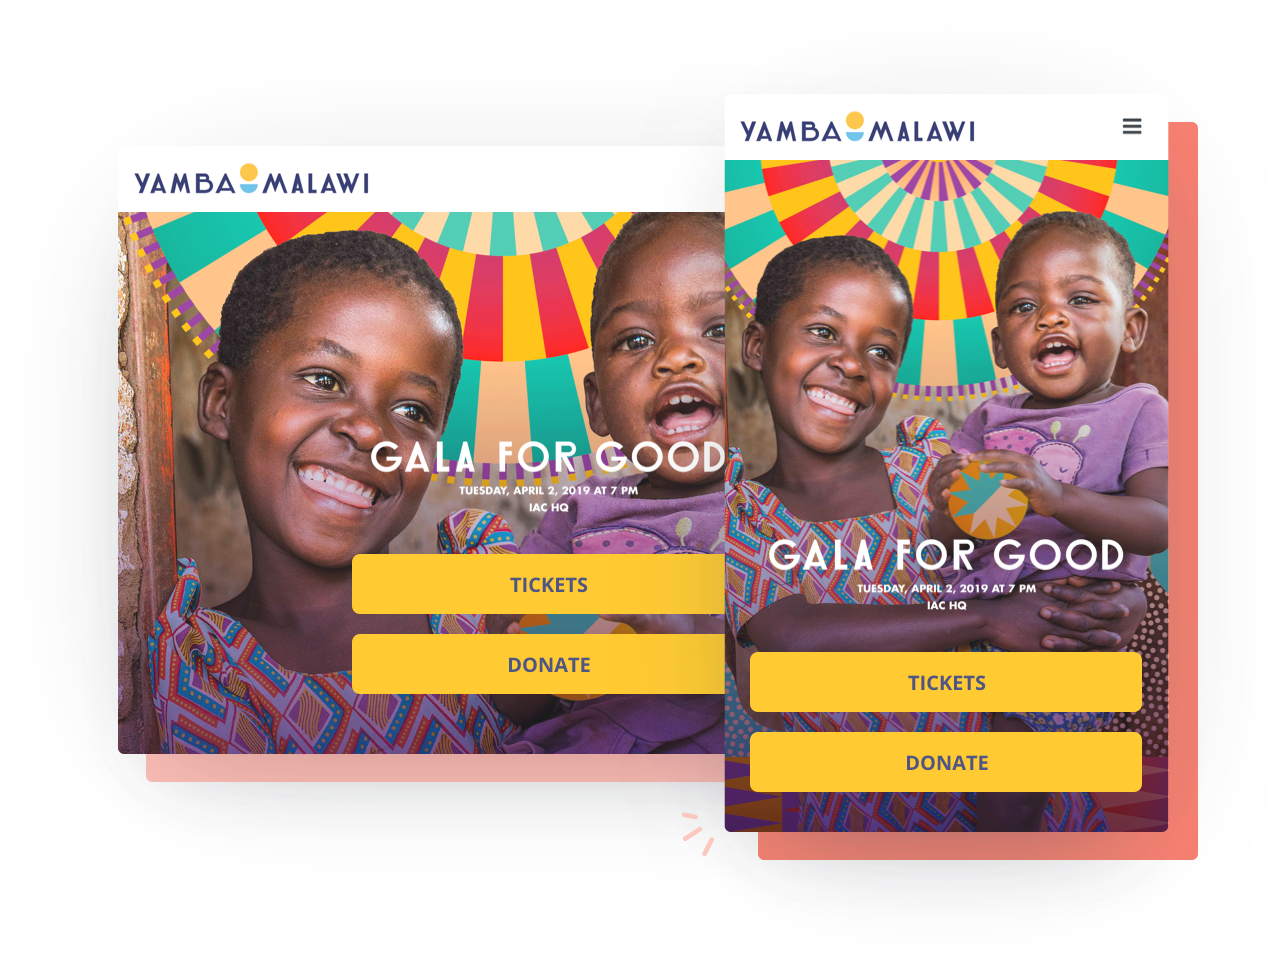 Fundraising event and ticketing solution example showing Yamba Malawi Gala for Good event page on both desktop and mobile screens